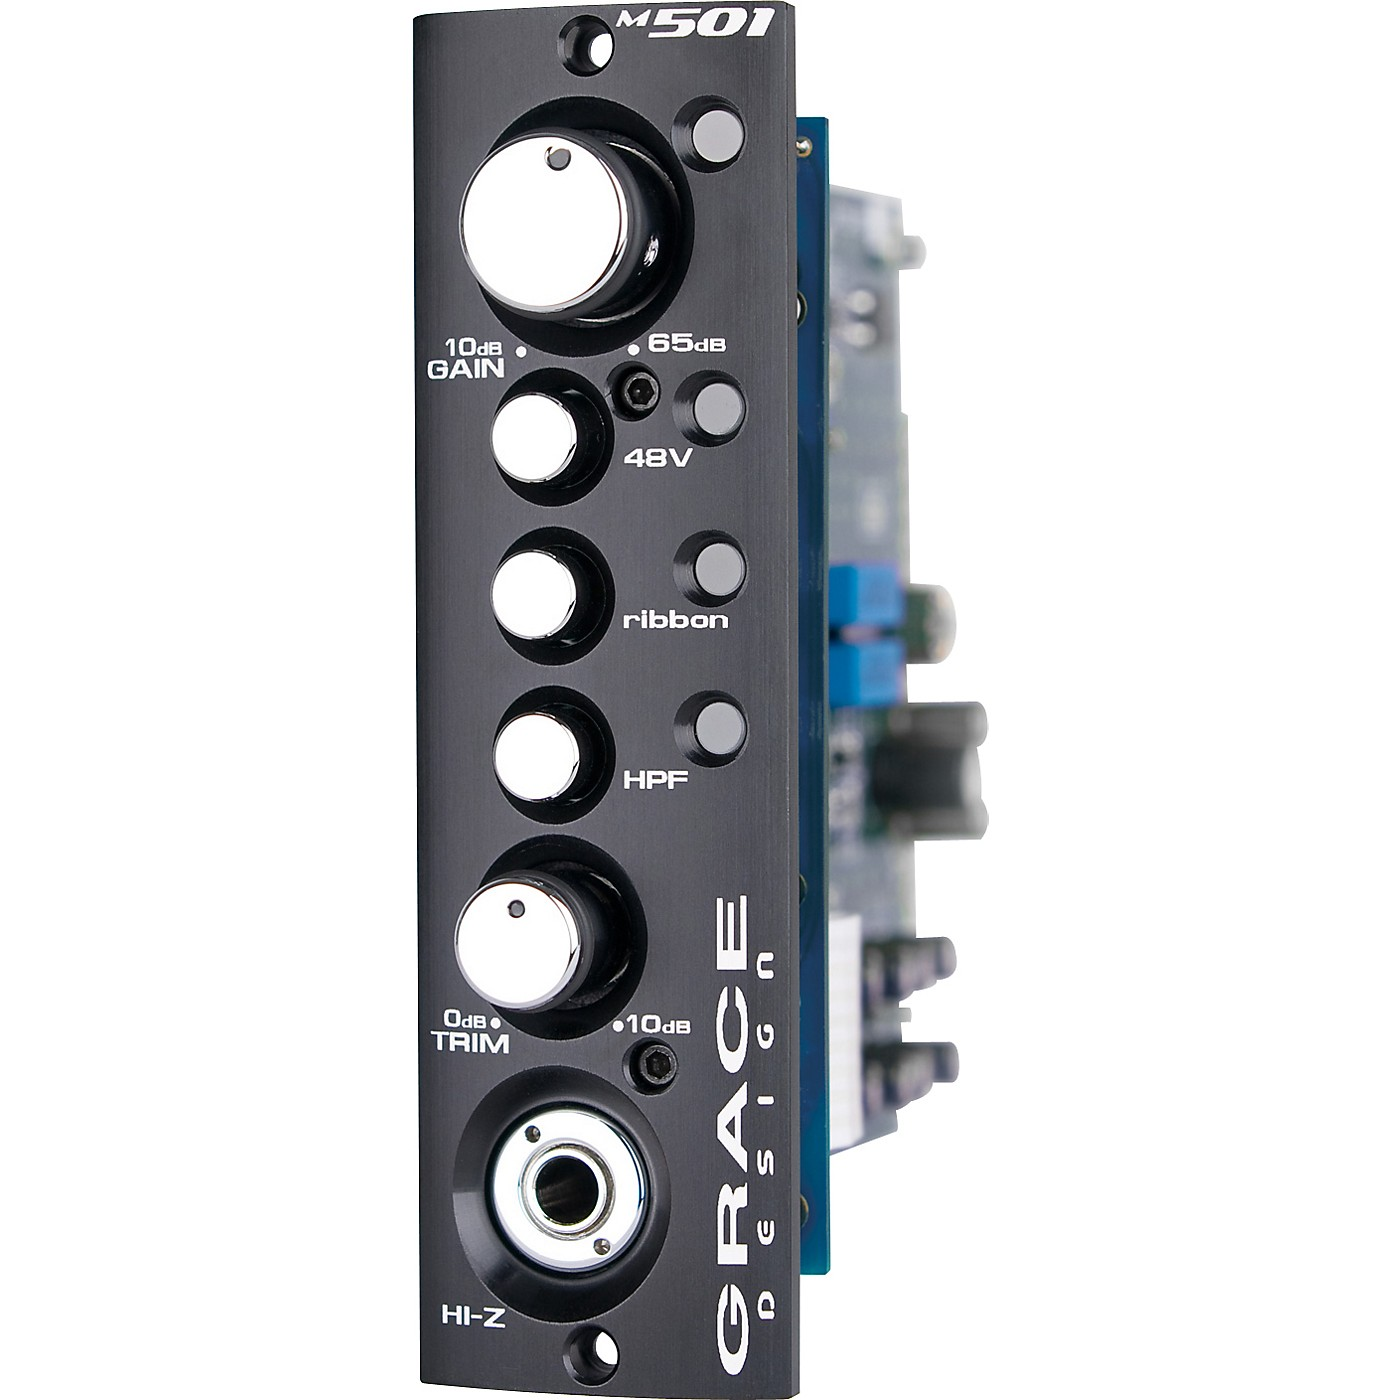 Grace Design m501 500 Series Microphone Preamp thumbnail